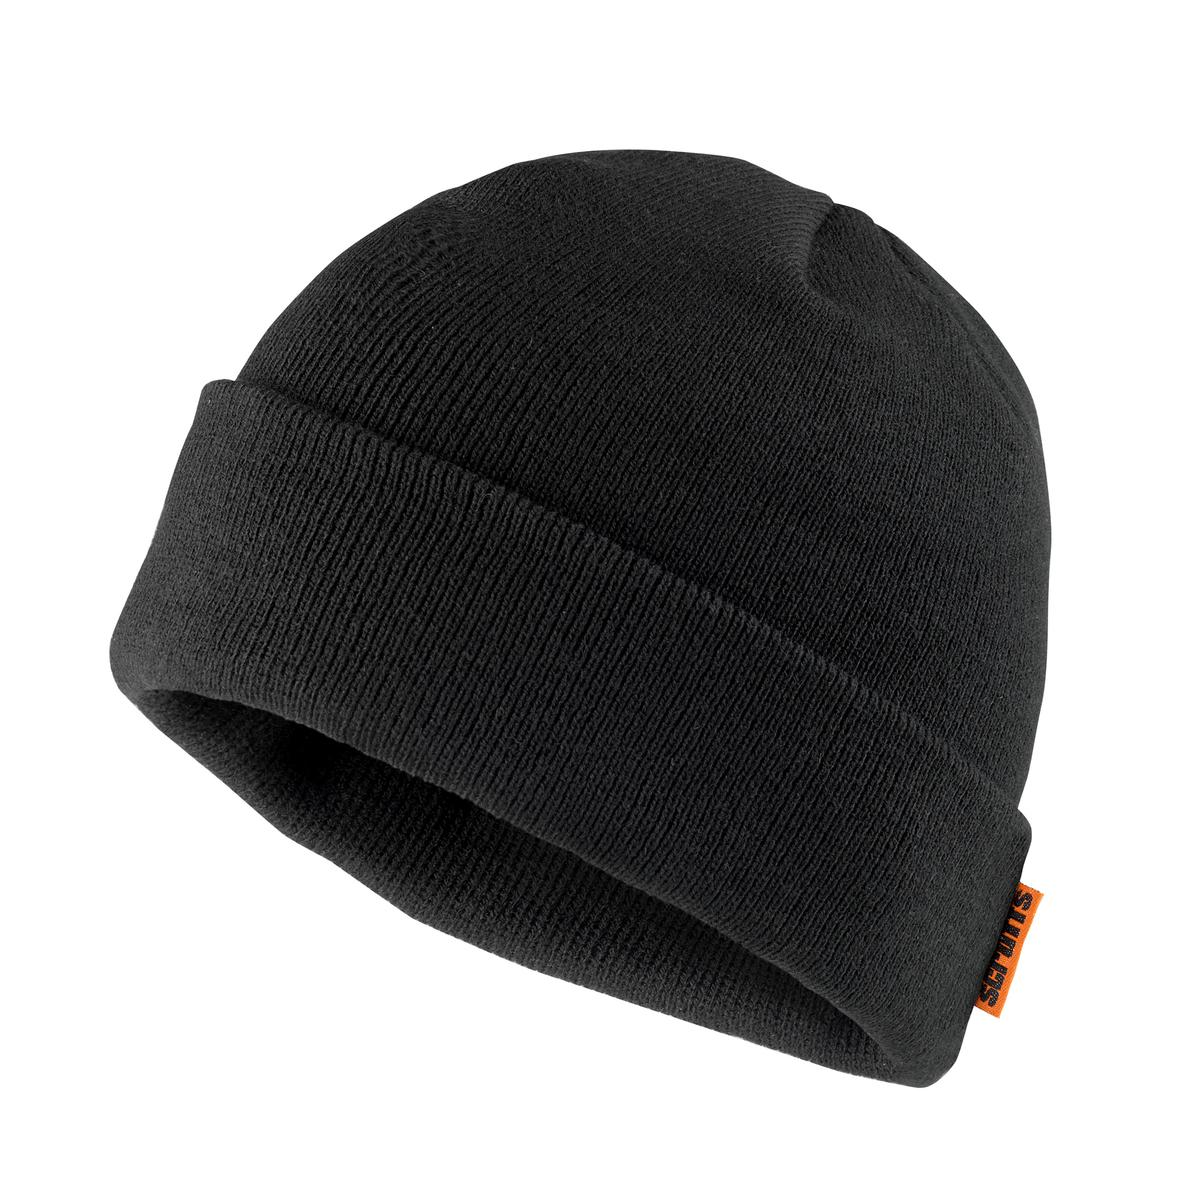 Thinsulate Peaked Knitted Black Beanie Hat Winter Hat One Size